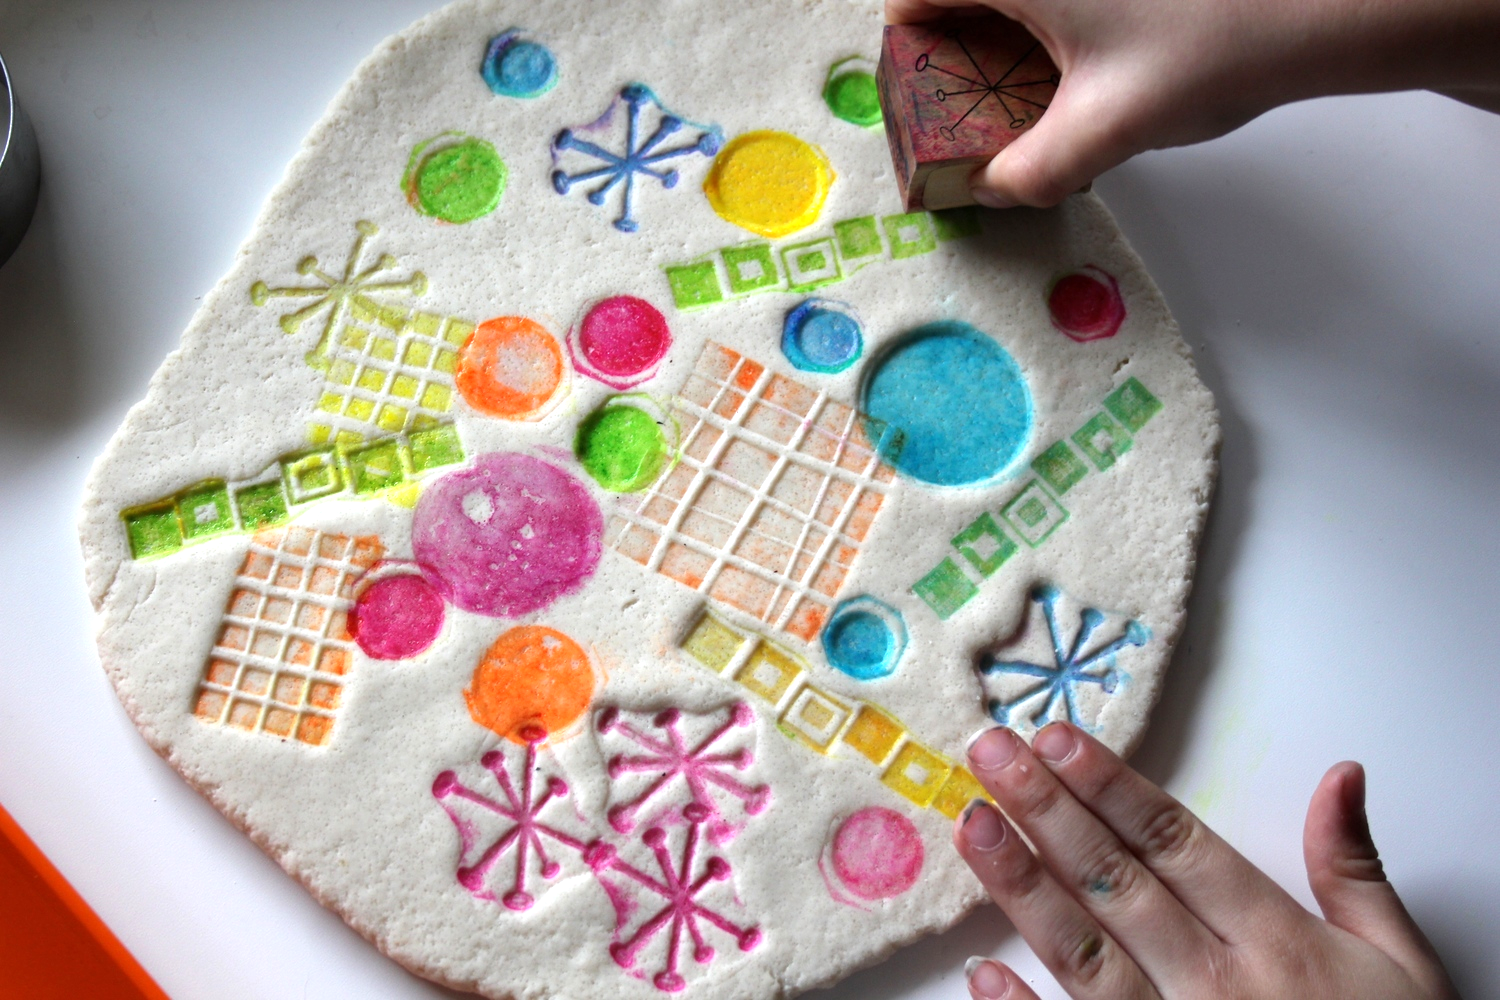 Gently press the inked stamp into the rolled dough. To get the best results be sure to wipe your stamp with a damp paper towel before using a new color. Think of this as a salt dough canvas!